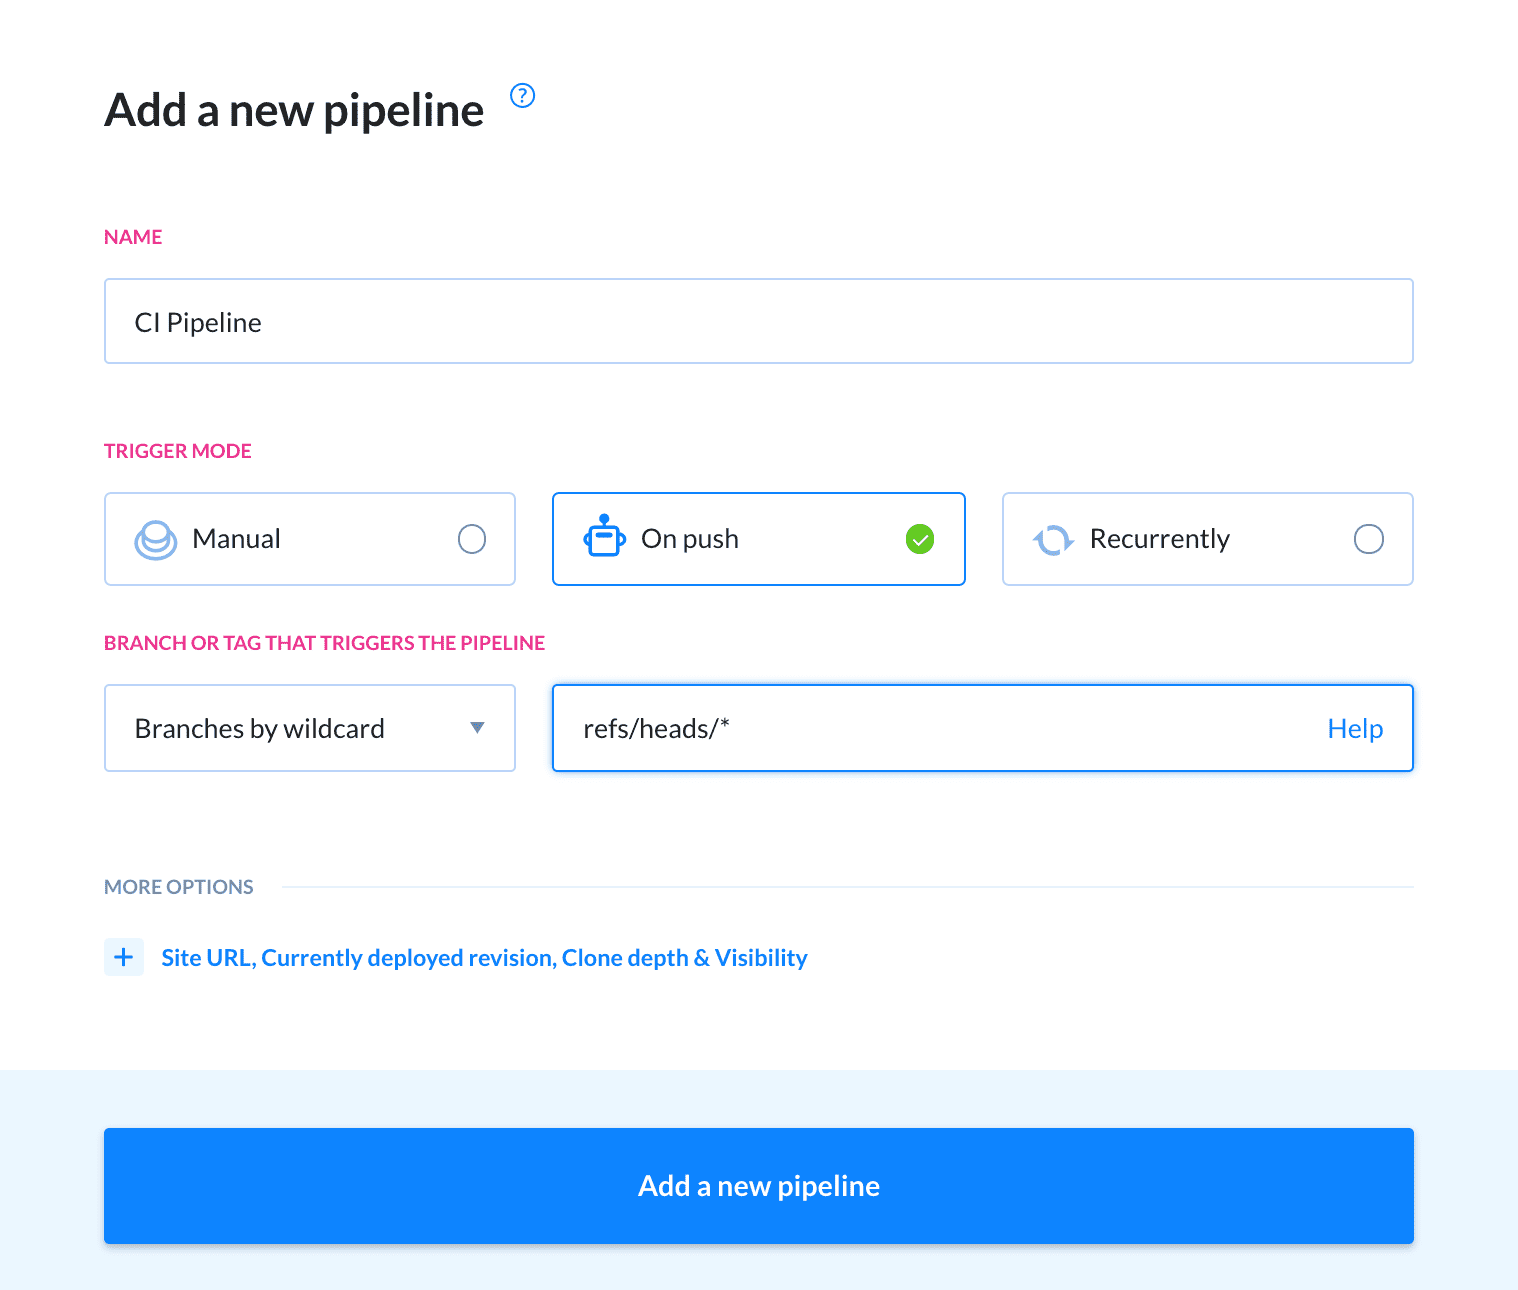 Adding a new pipeline